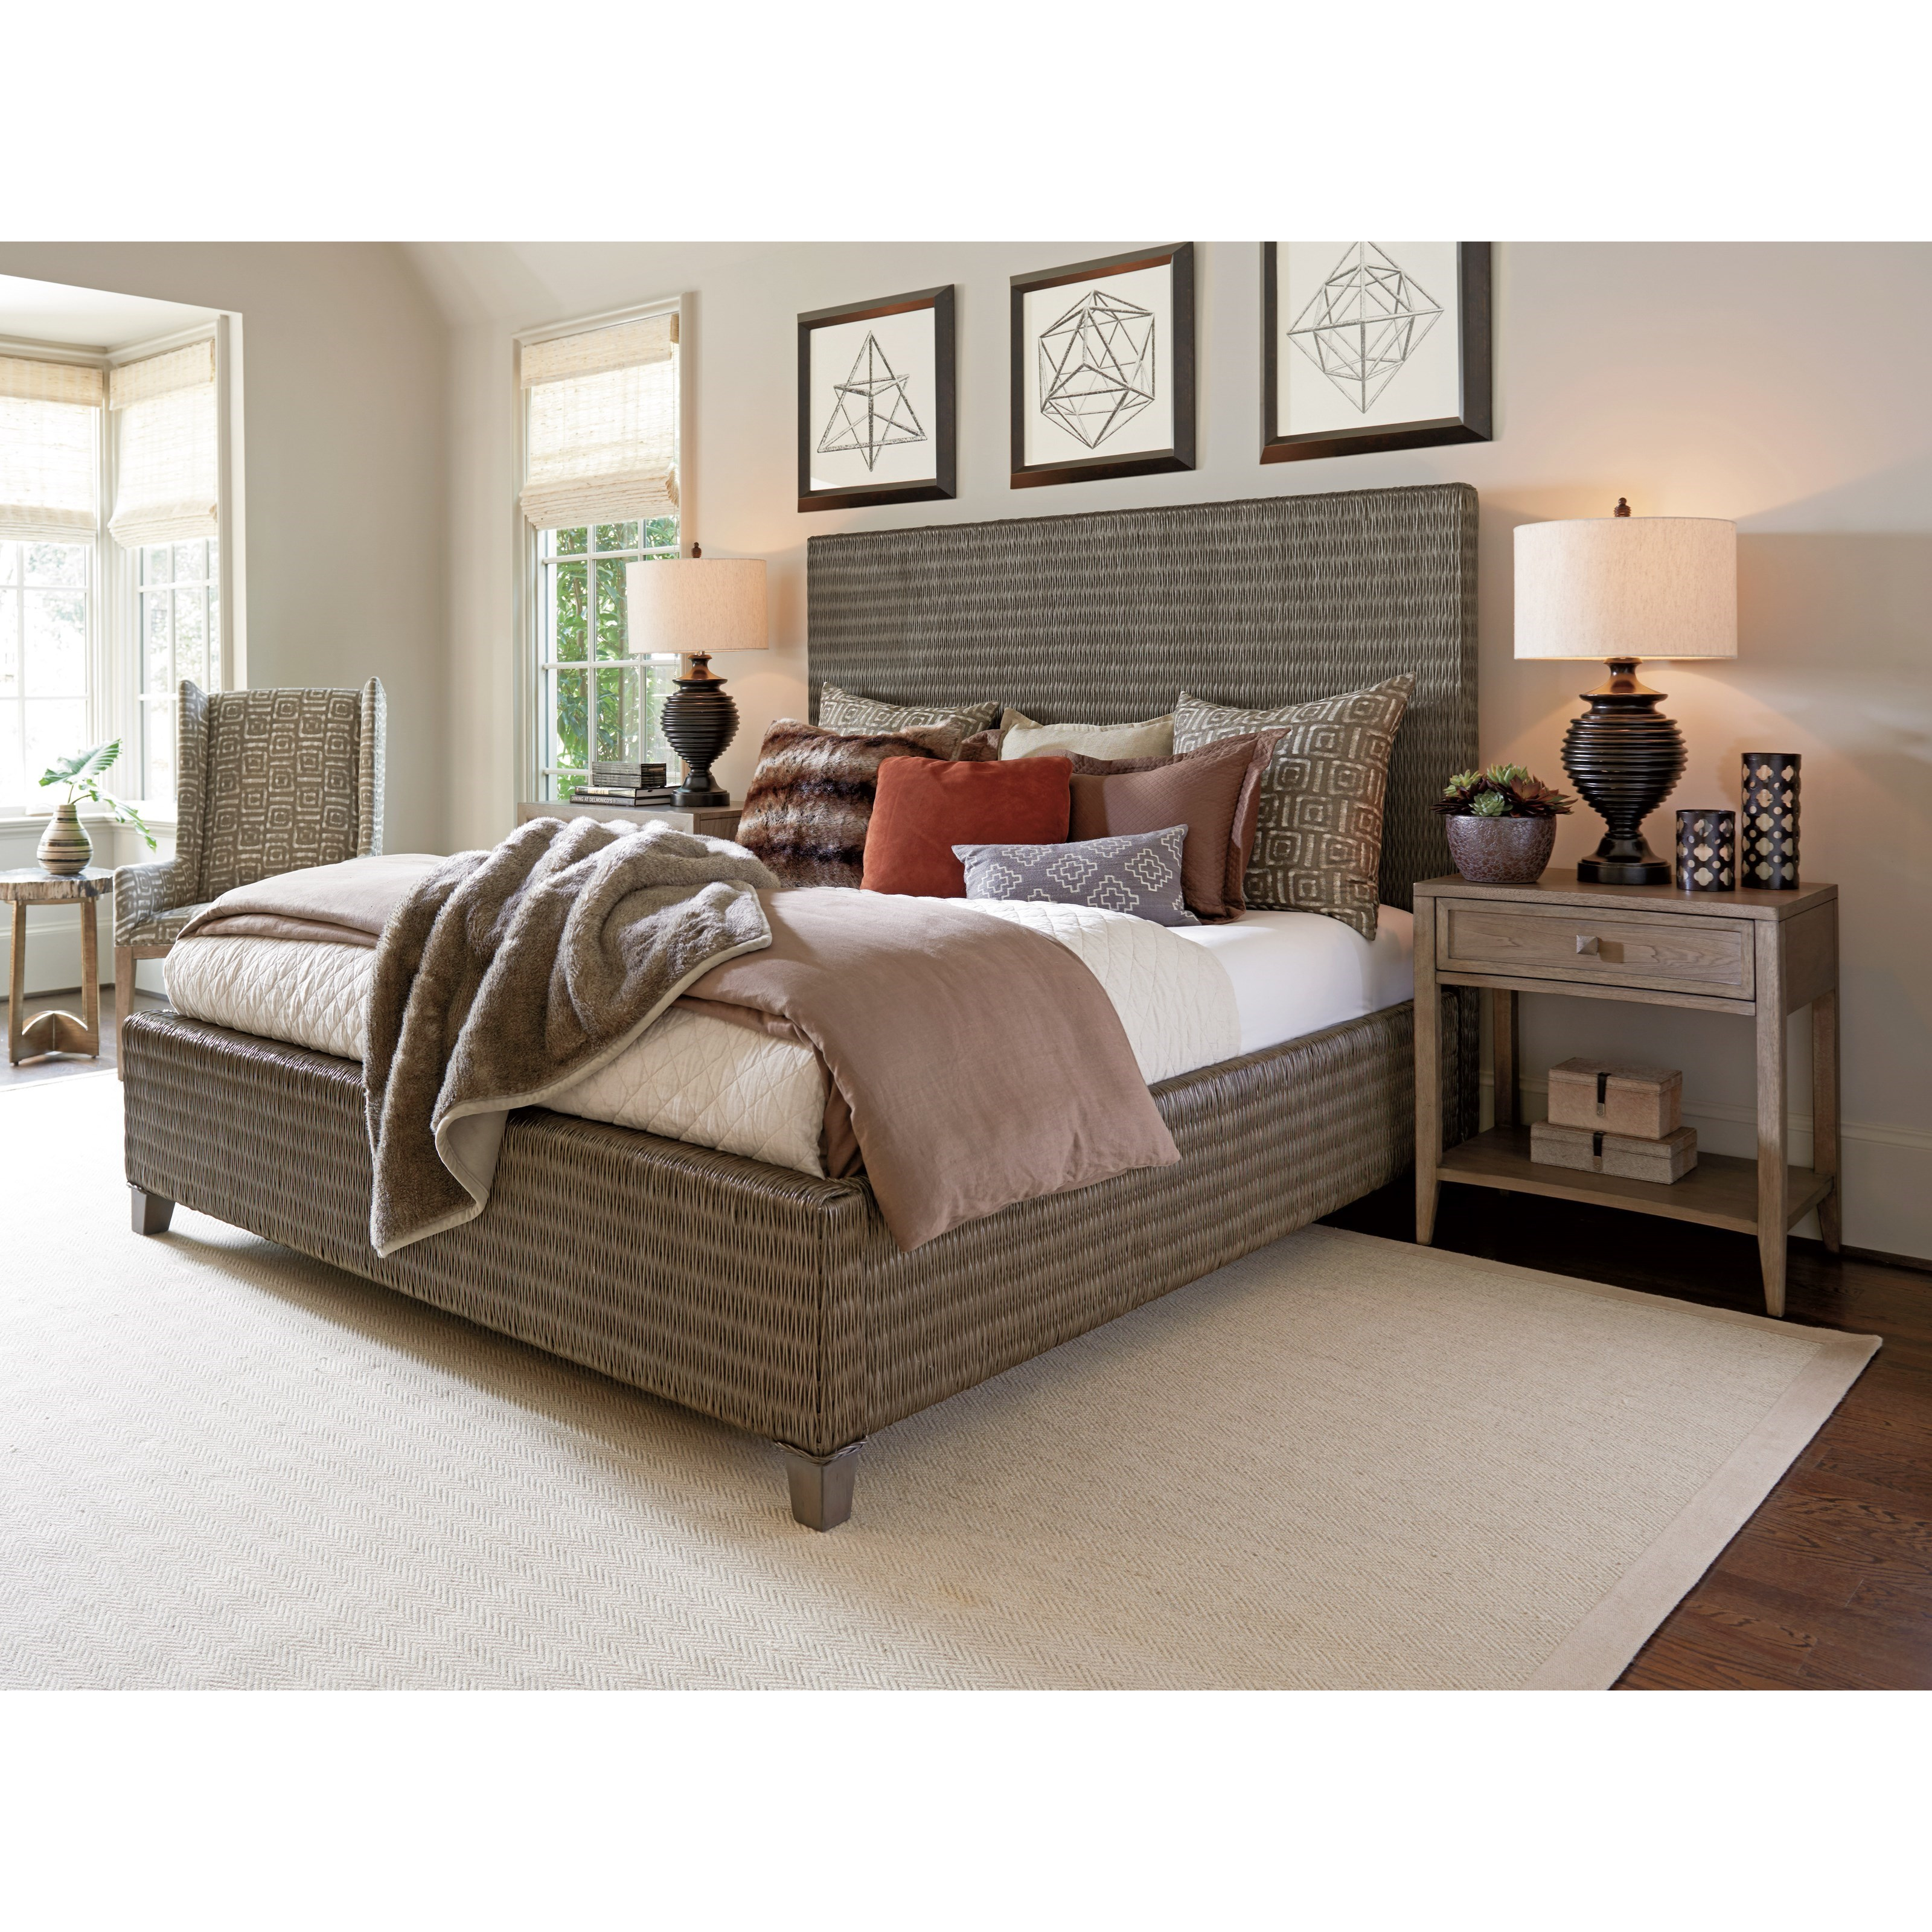 Cypress Point Queen Bedroom Group by Tommy Bahama Home at Baer's Furniture